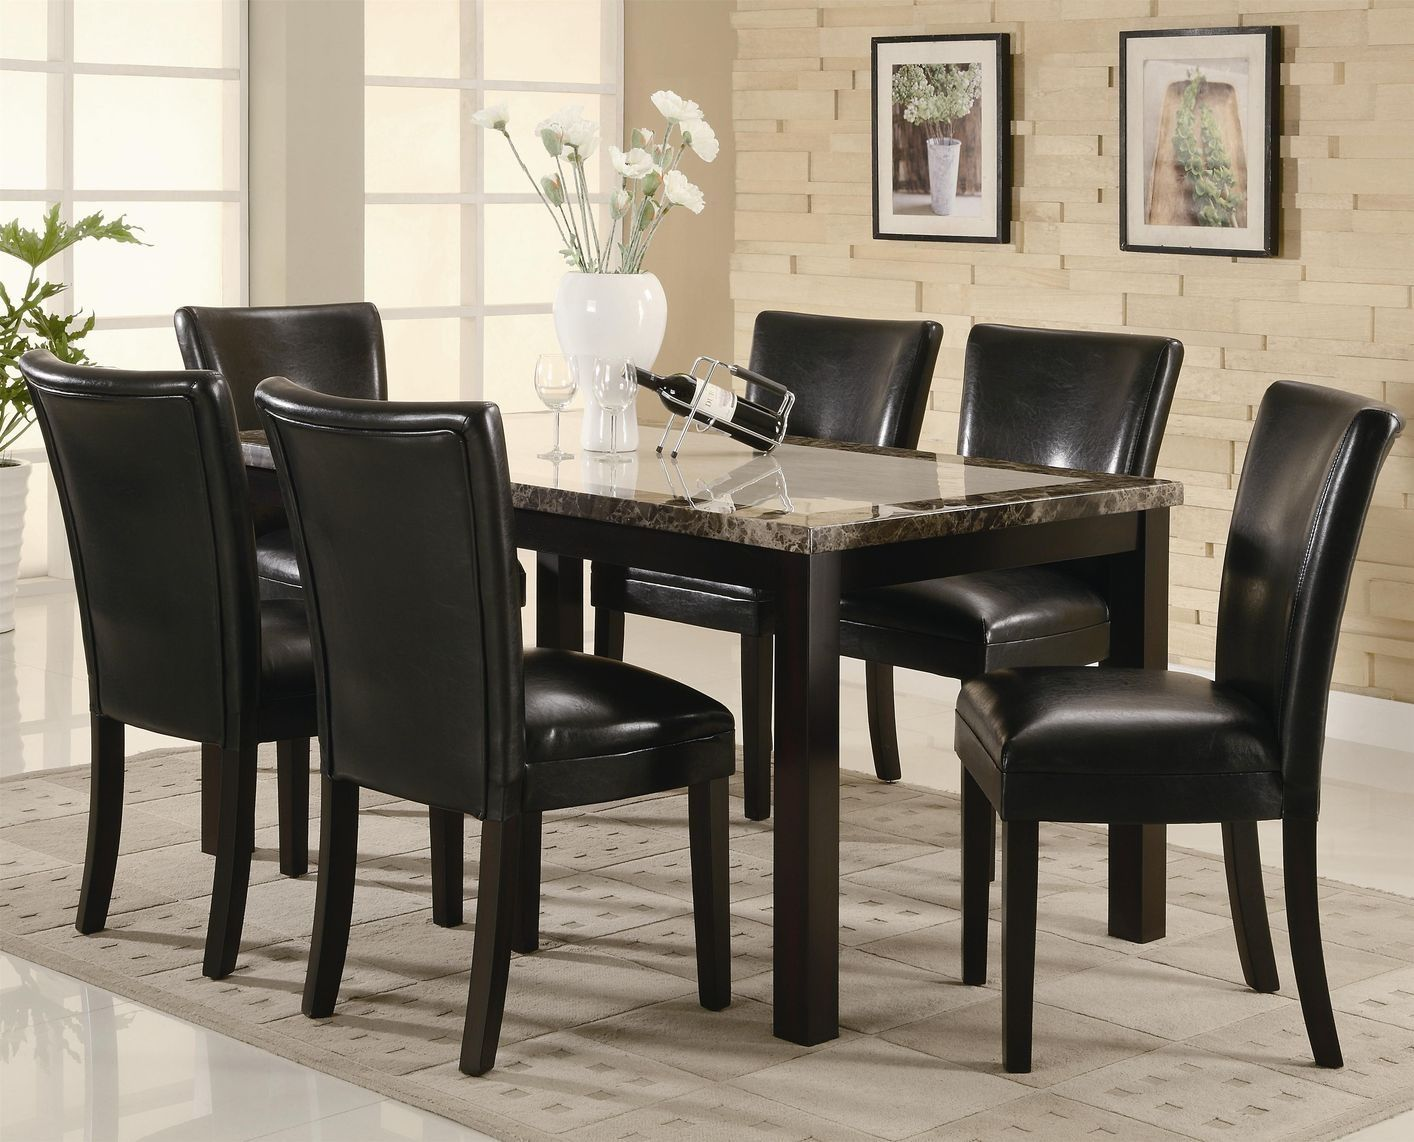 How To Maintain The Beauty Of Your Marble Dining Table Dining